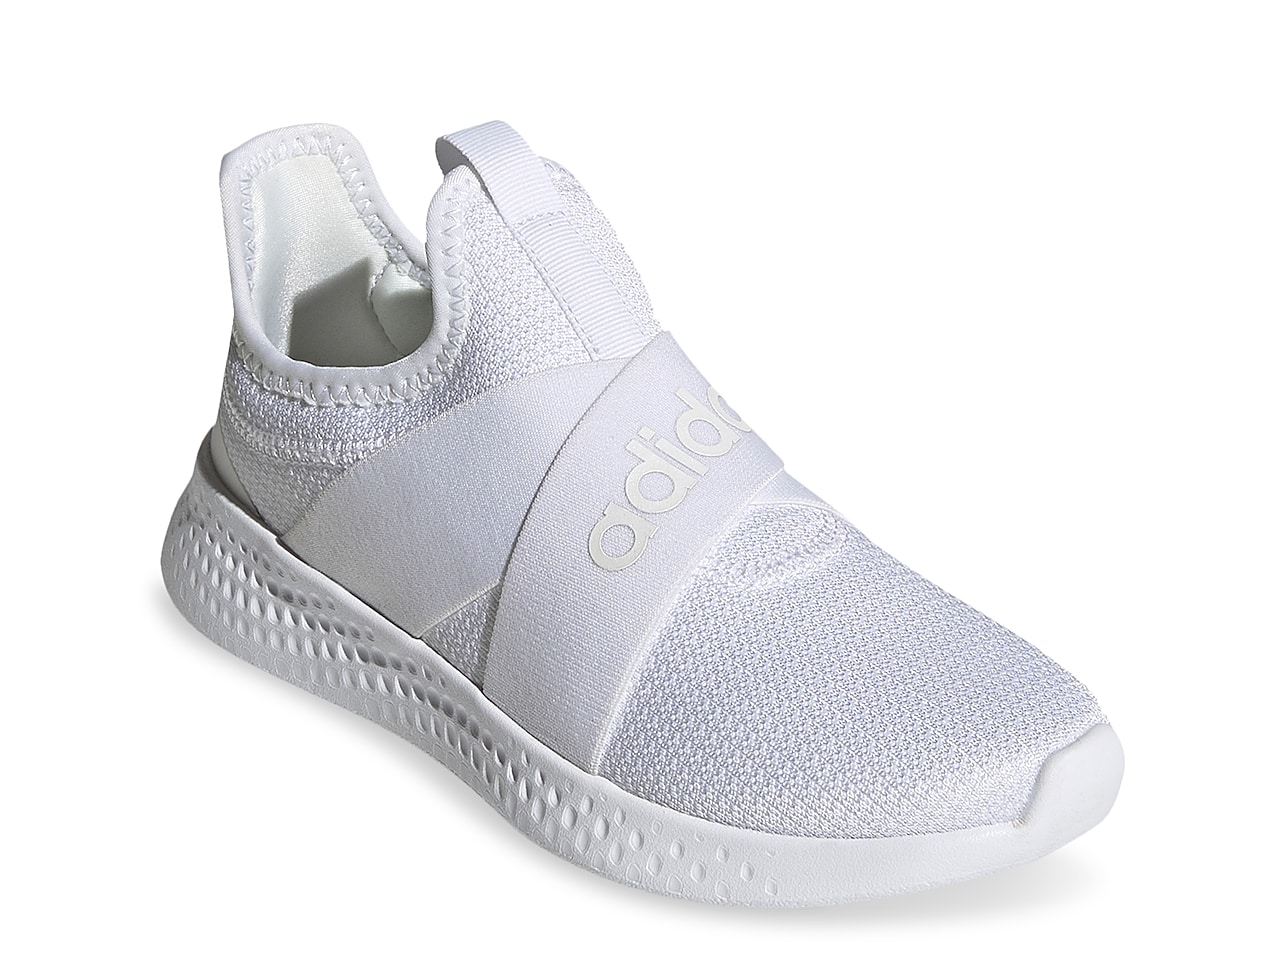 Puremotion Adapt Slip-On Sneaker - Women's